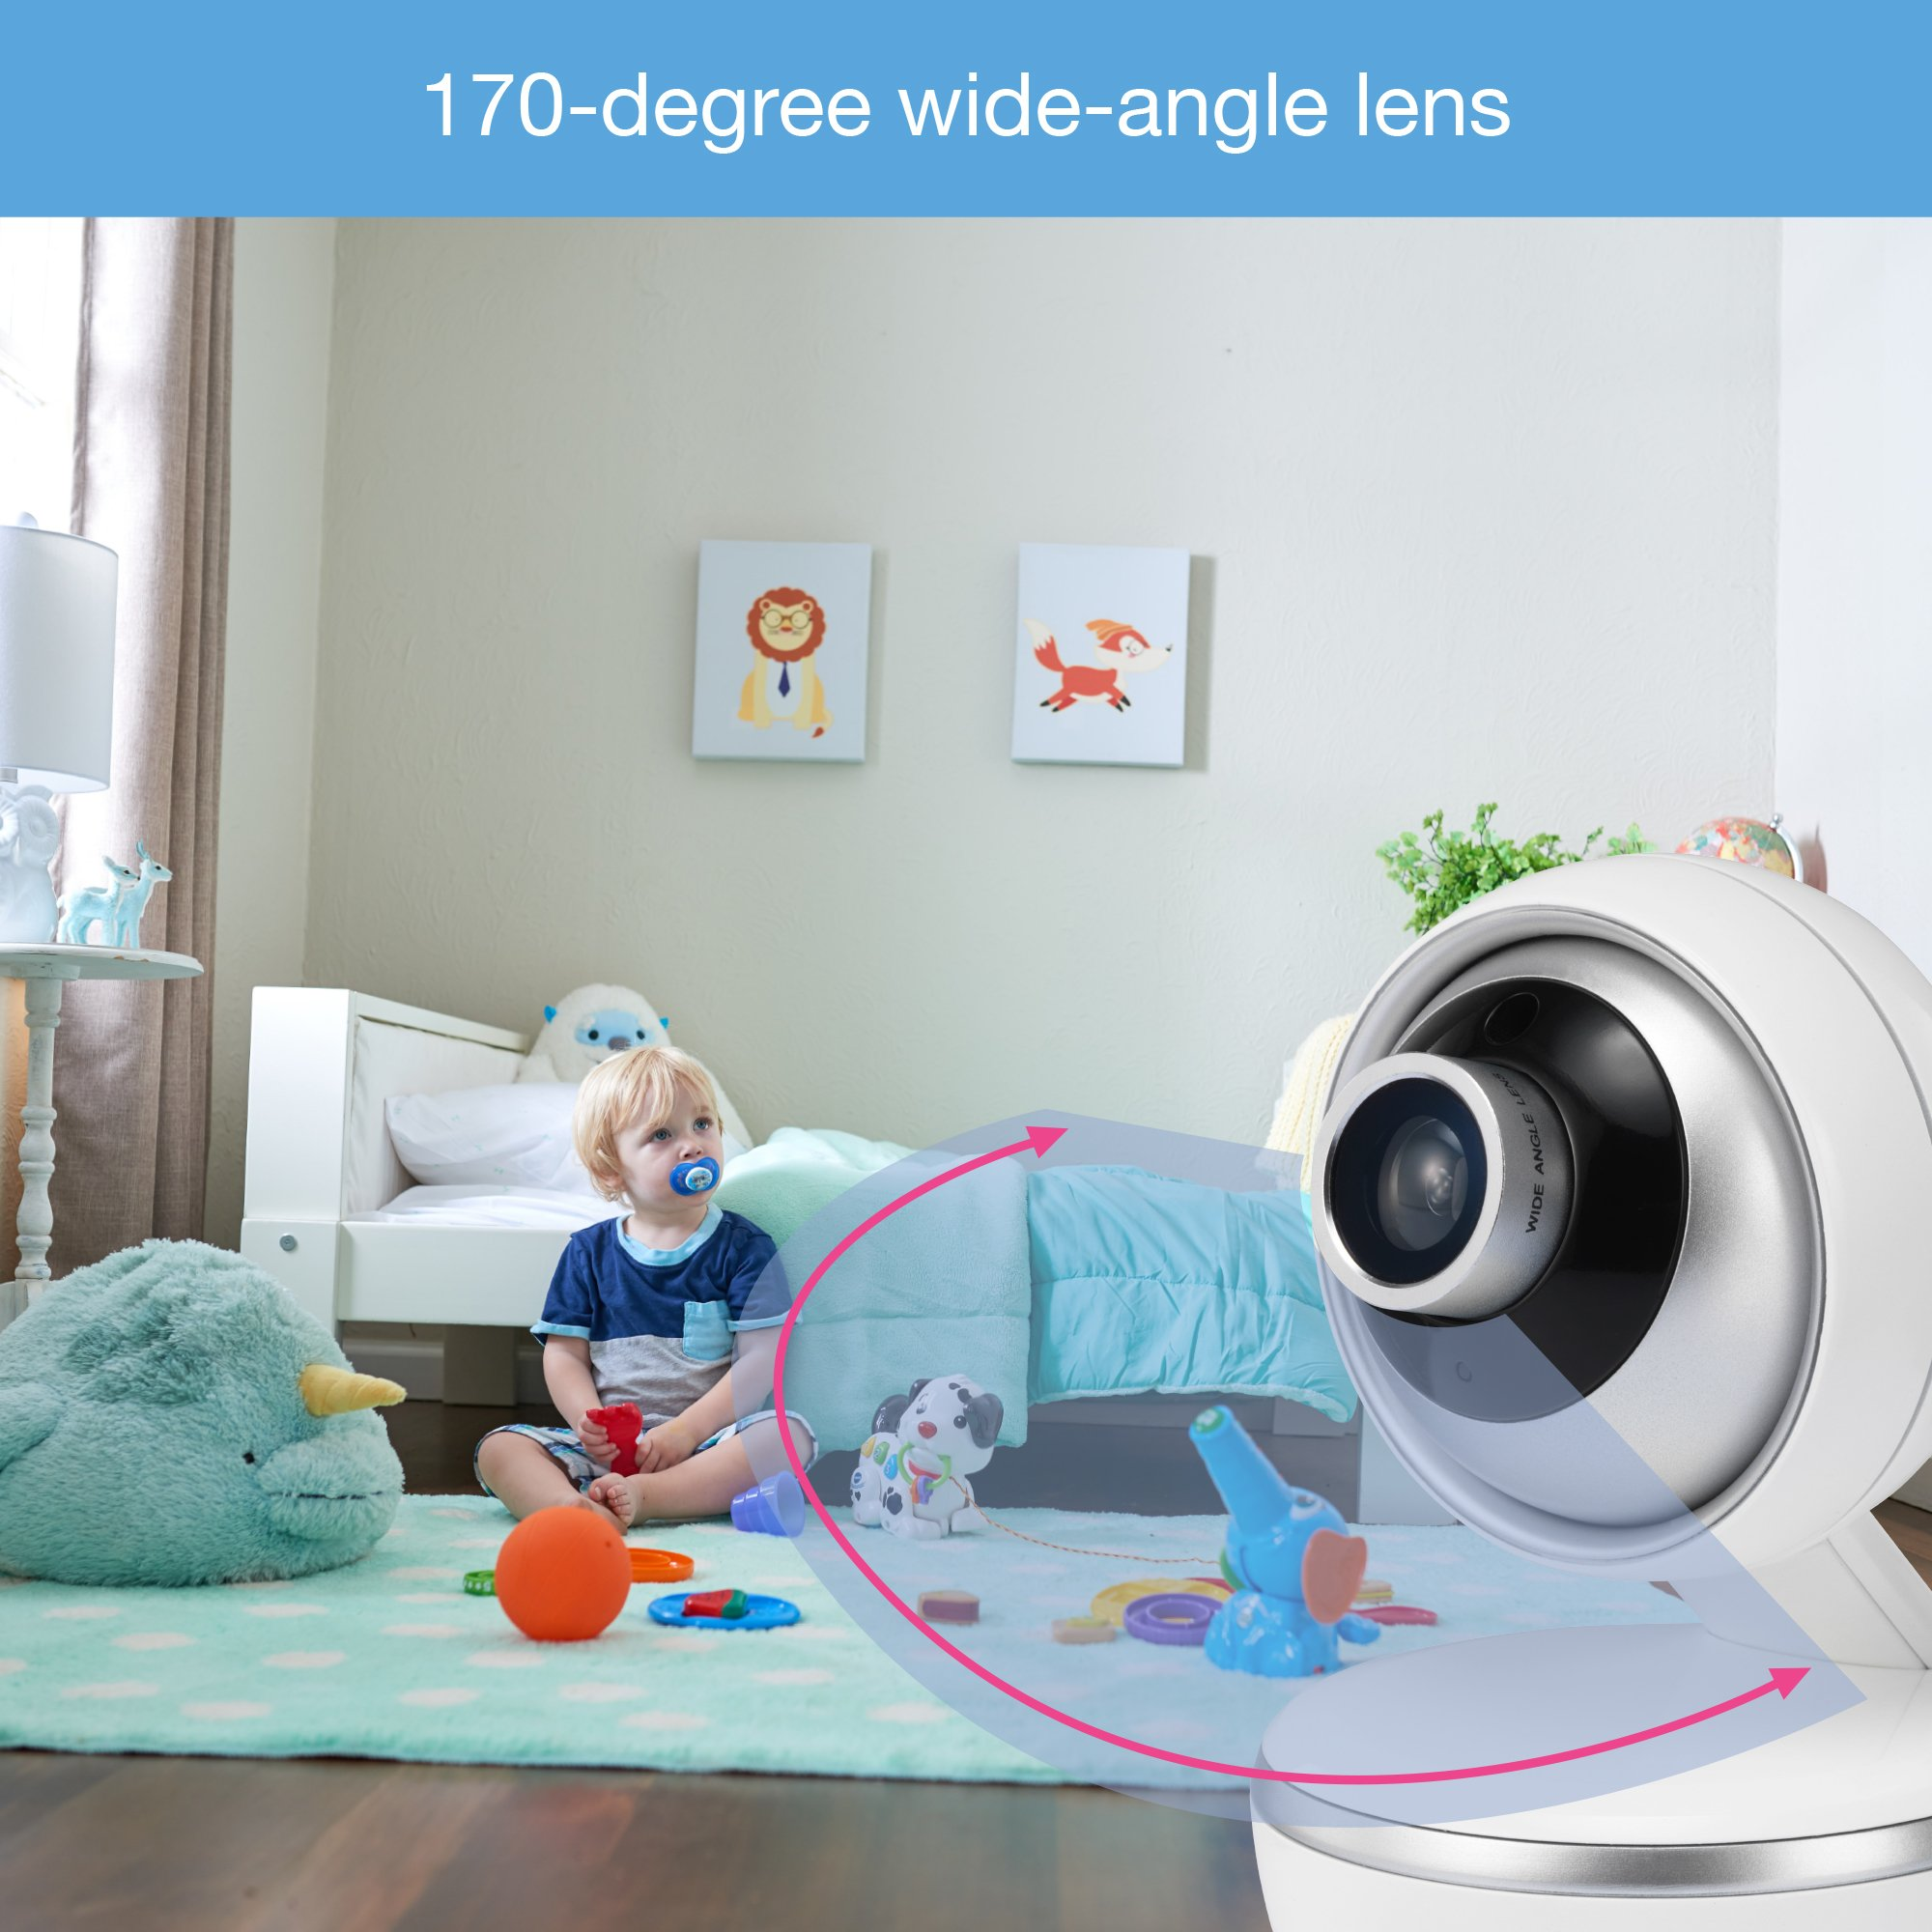 "VTech VM5261 5"" Digital Video Baby Monitor with Pan & Tilt Camera, Wide-Angle Lens and Standard Lens, White by VTech (Image #6)"